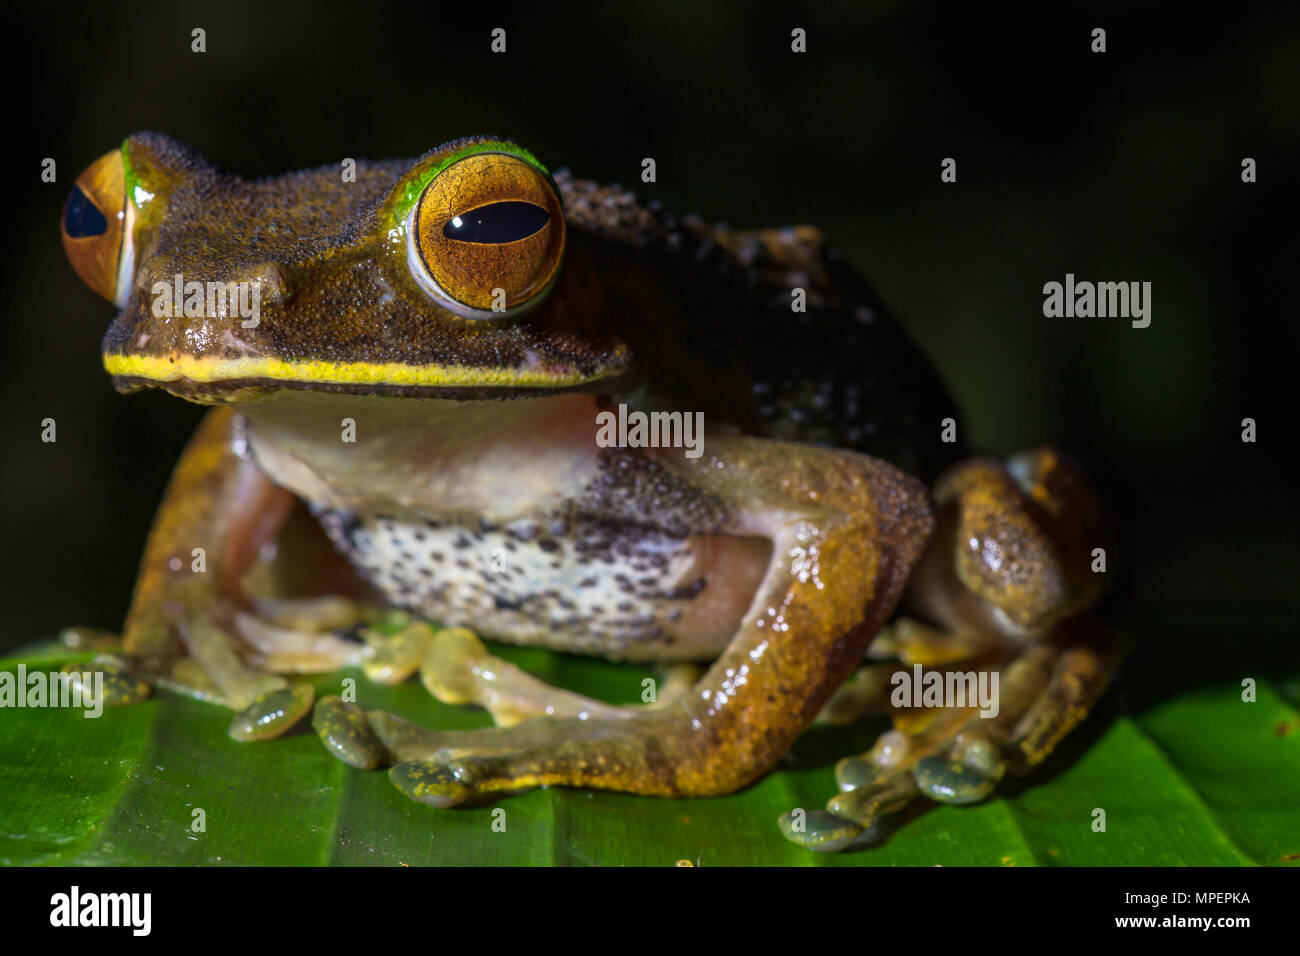 Tree climbing frog species (Boophis albilabris), male sitting on leaf, Andasibe National Park, Madagascar - Stock Image